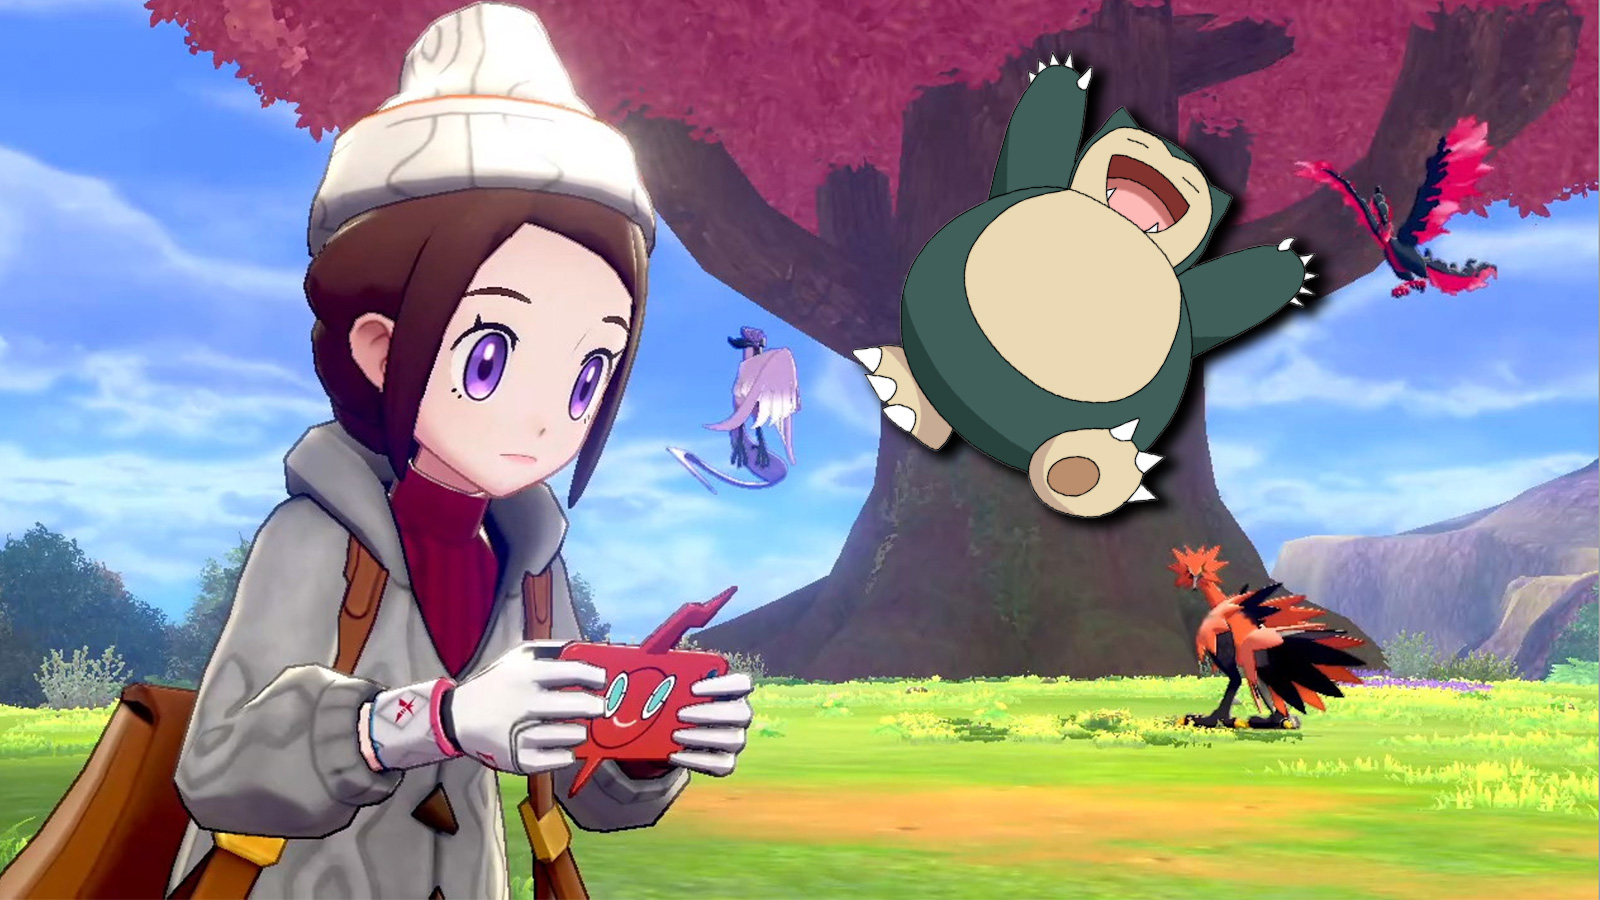 Screenshot from Pokemon Sword & Shield Crown Tundra with Flying Snorlax.